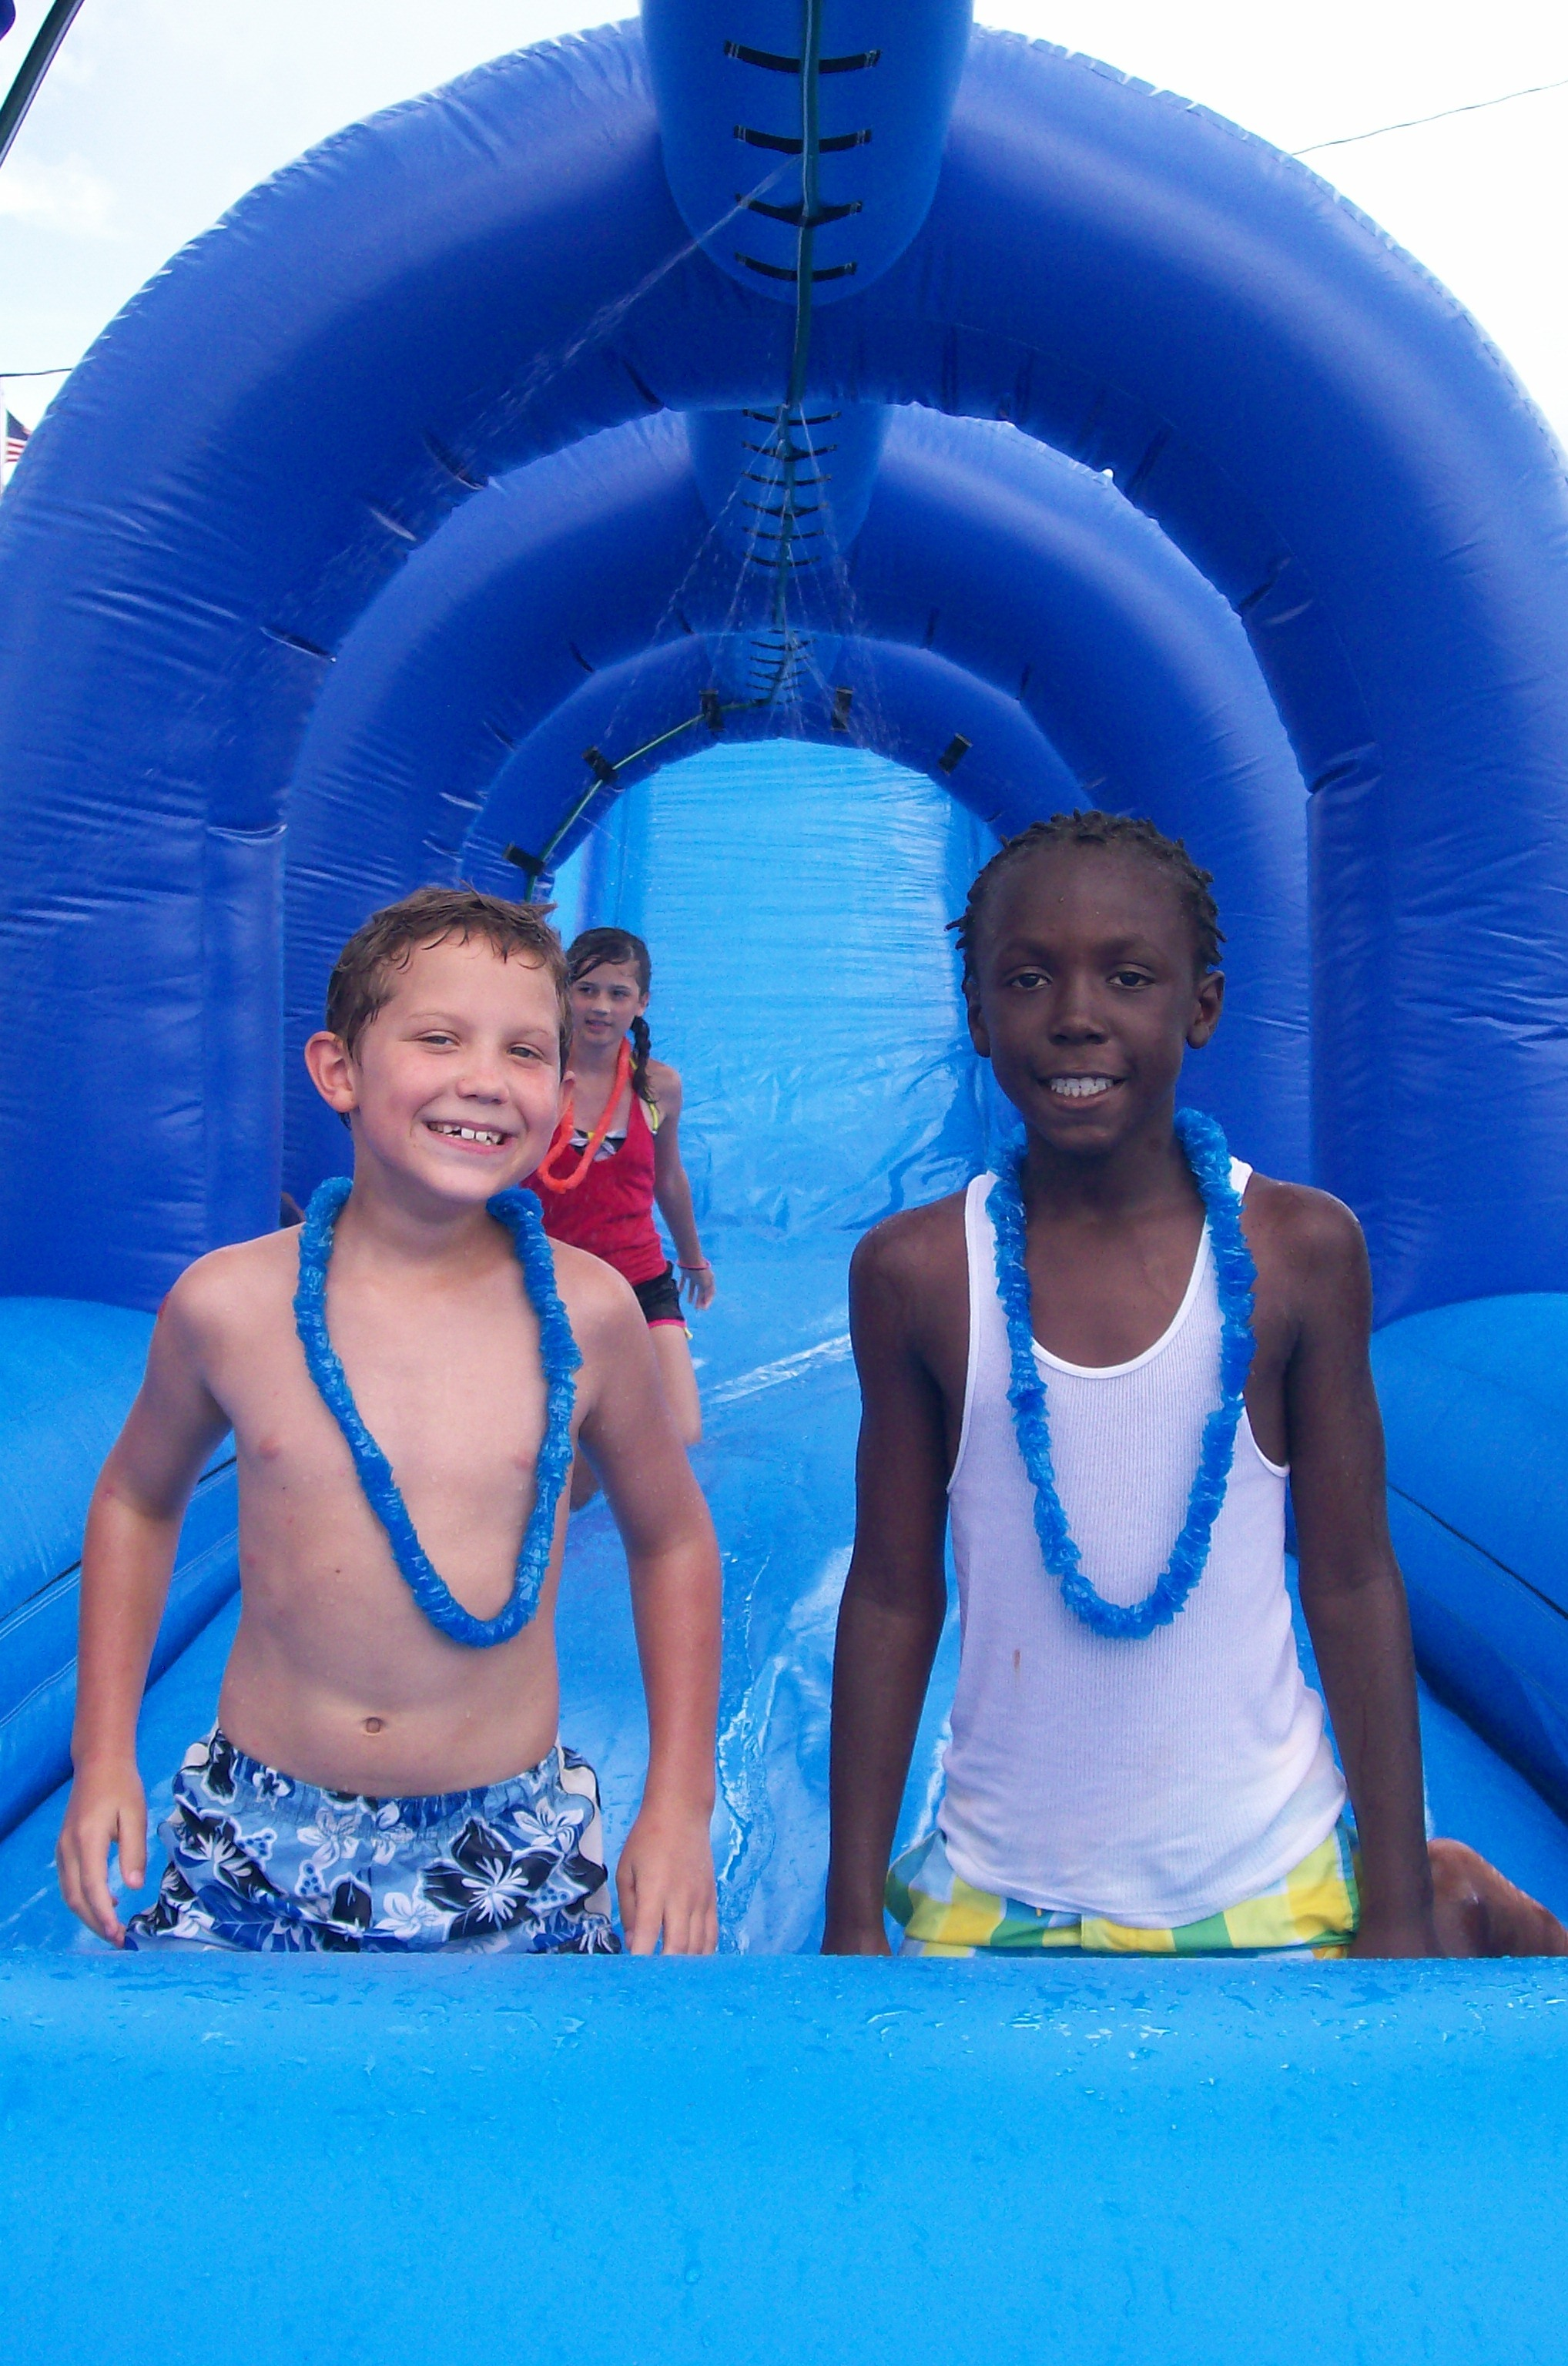 Two local youths enjoy waterslide